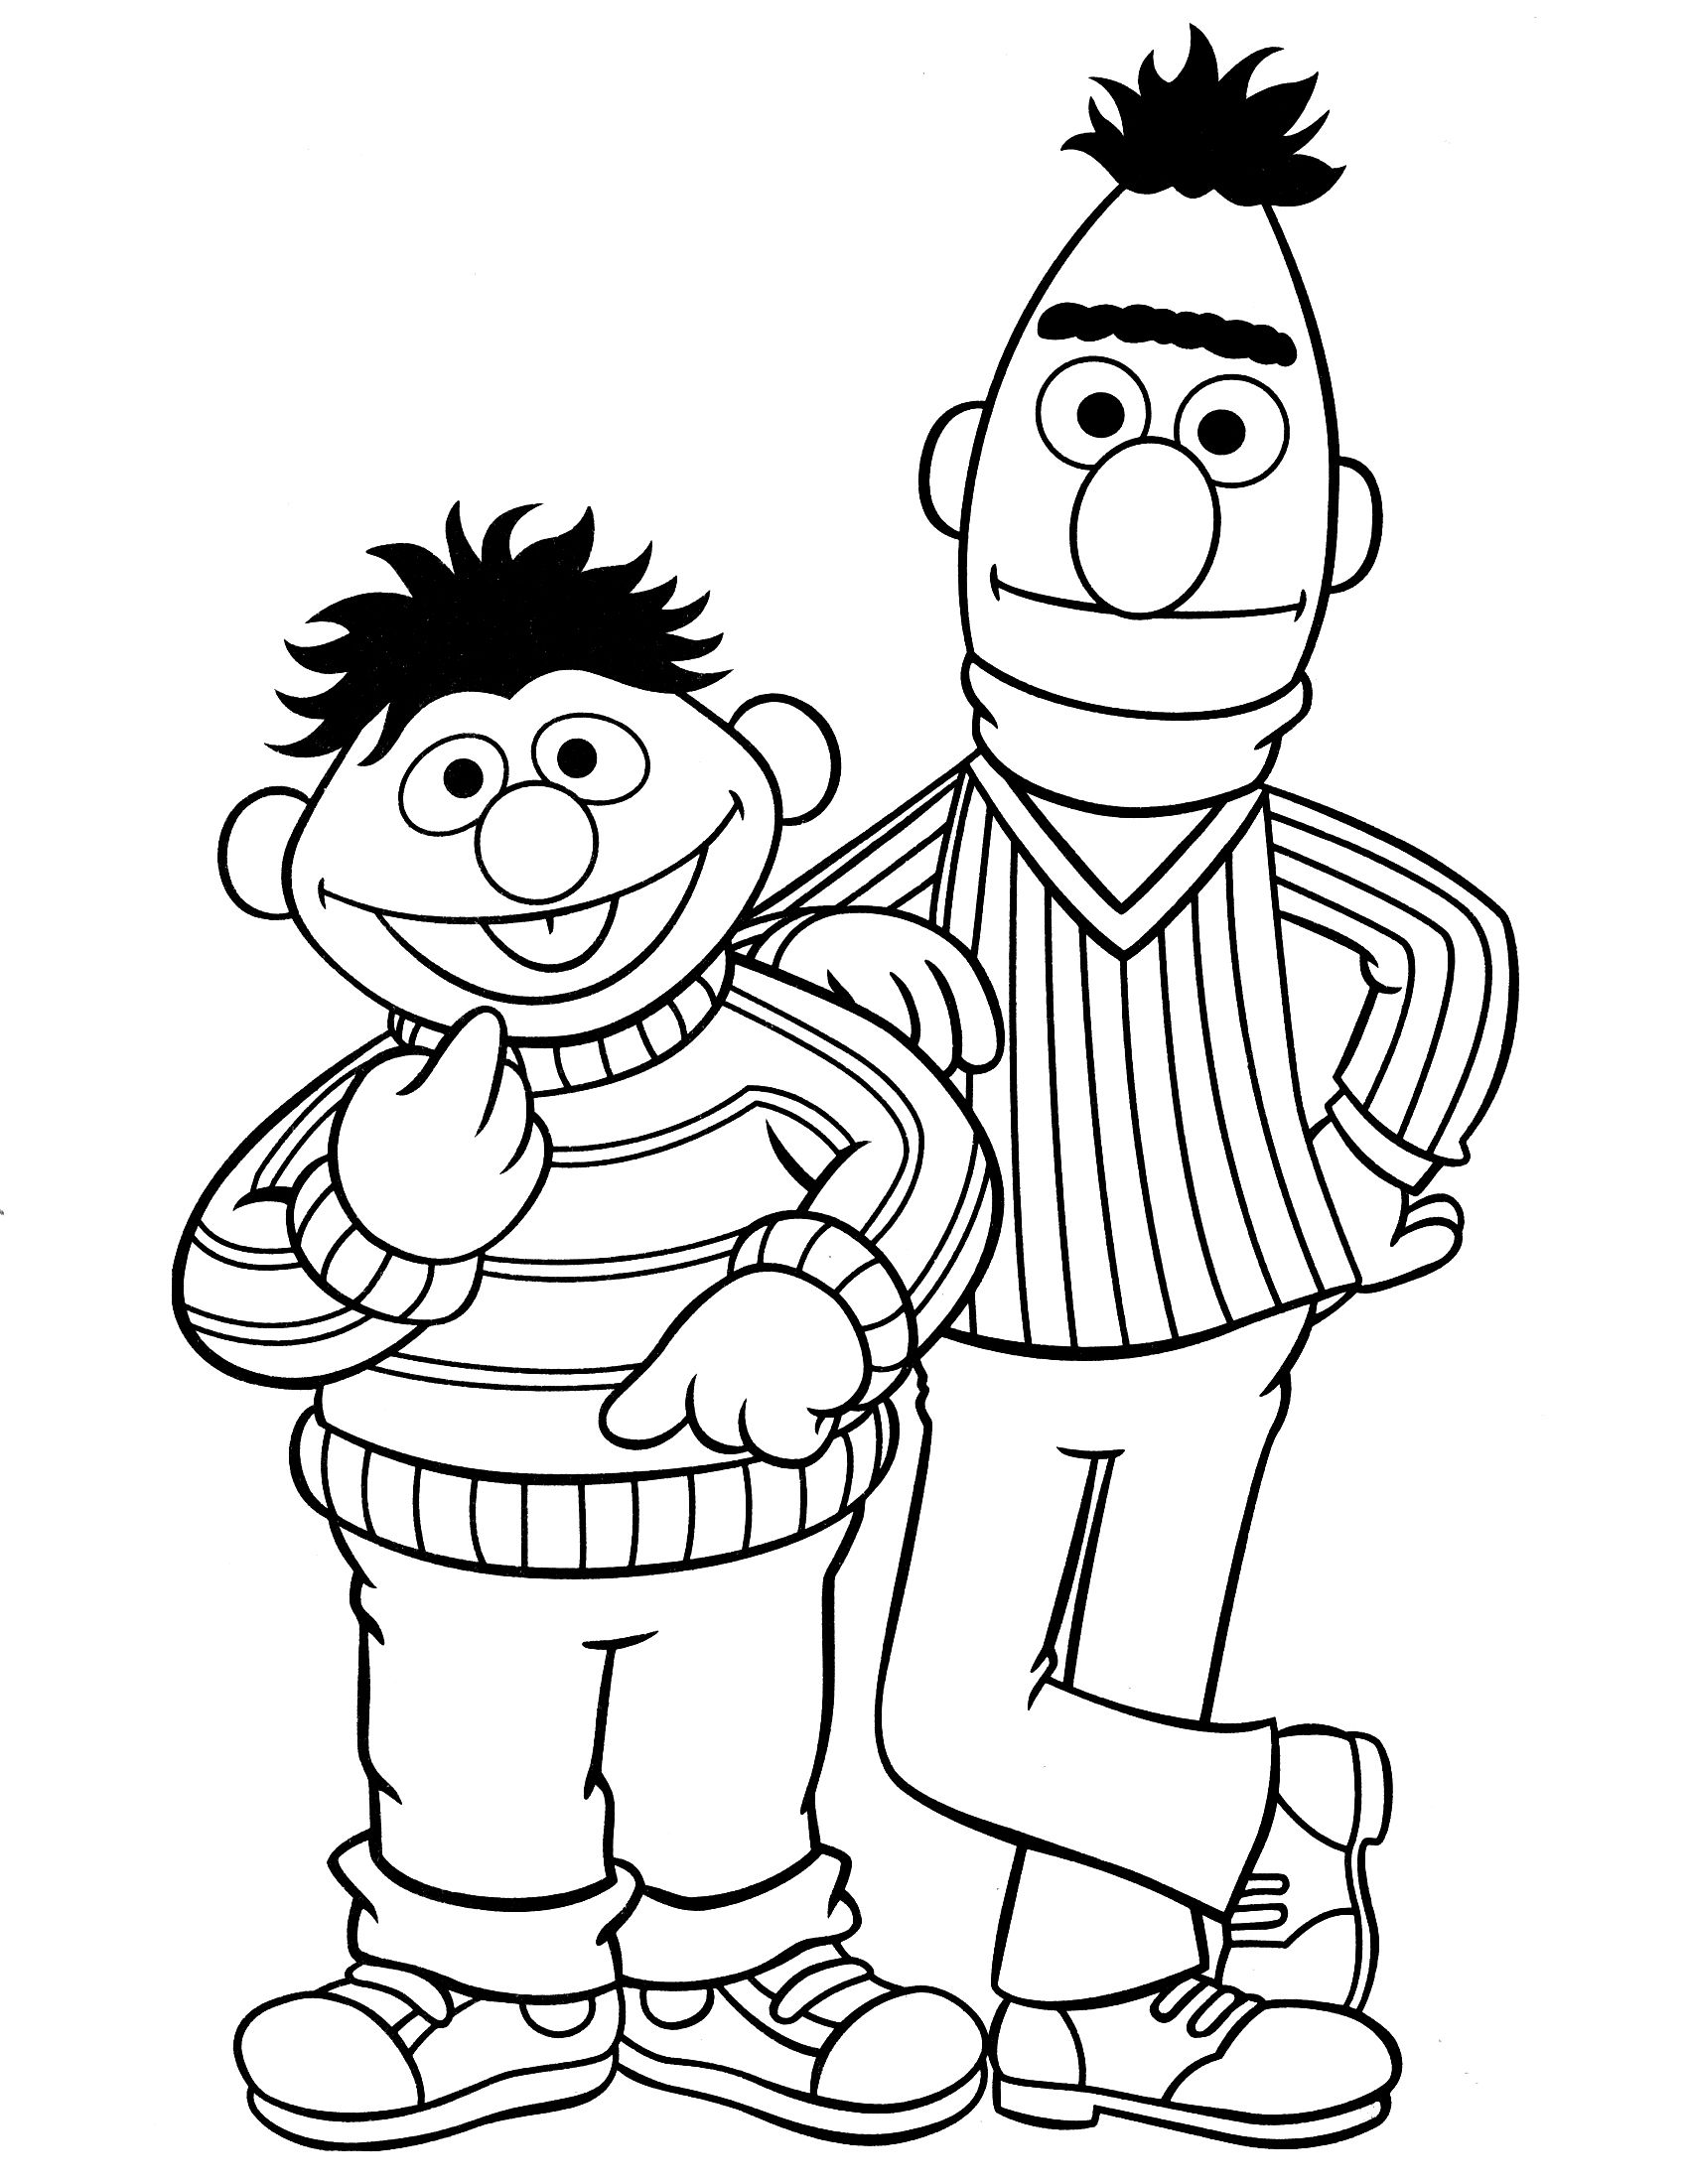 Grover from the muppets clipart black and white vector transparent Here we provide some black and white sesame street coloring pages ... vector transparent